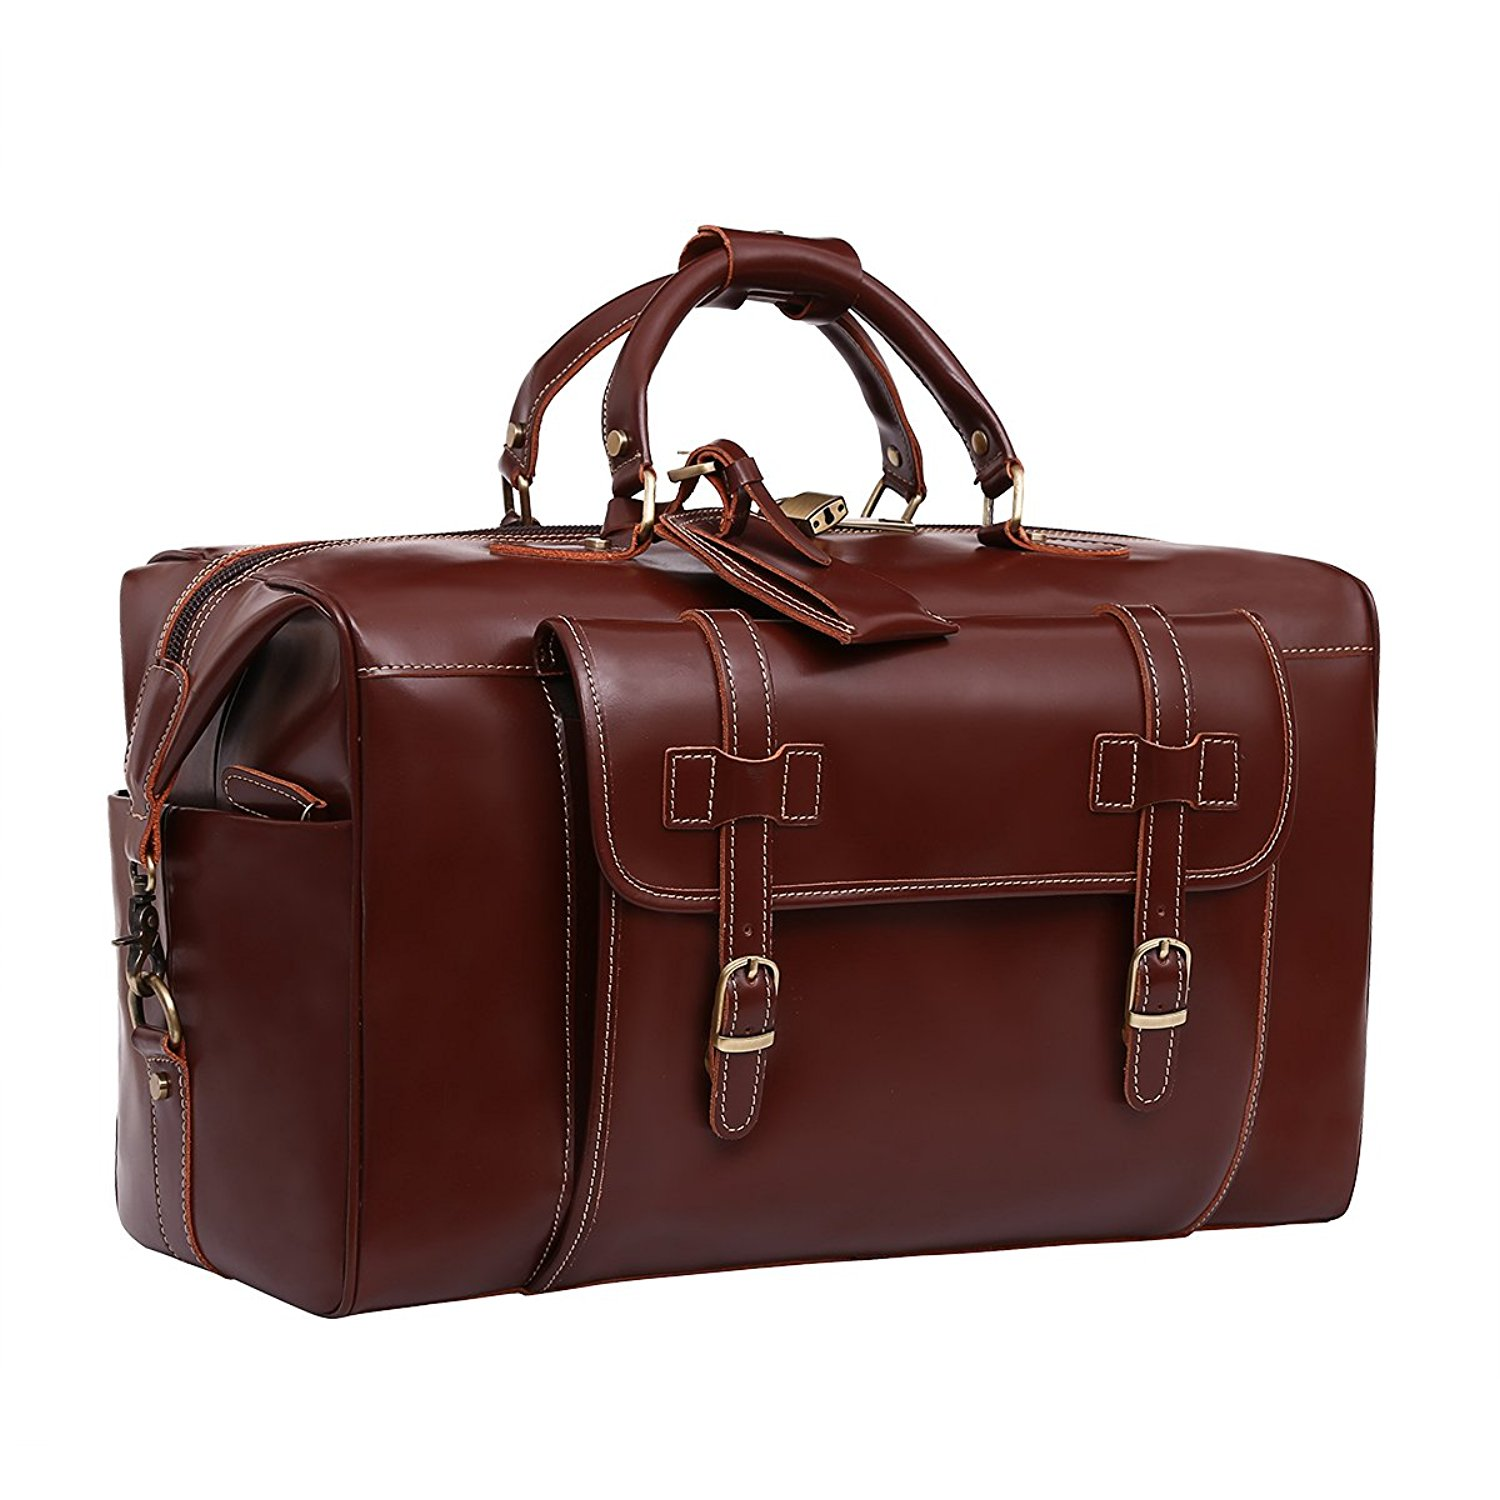 1e511307bc16bf Get Quotations · Leathario Mens Genuine Leather Overnight Travel Duffle  Weekend Bag